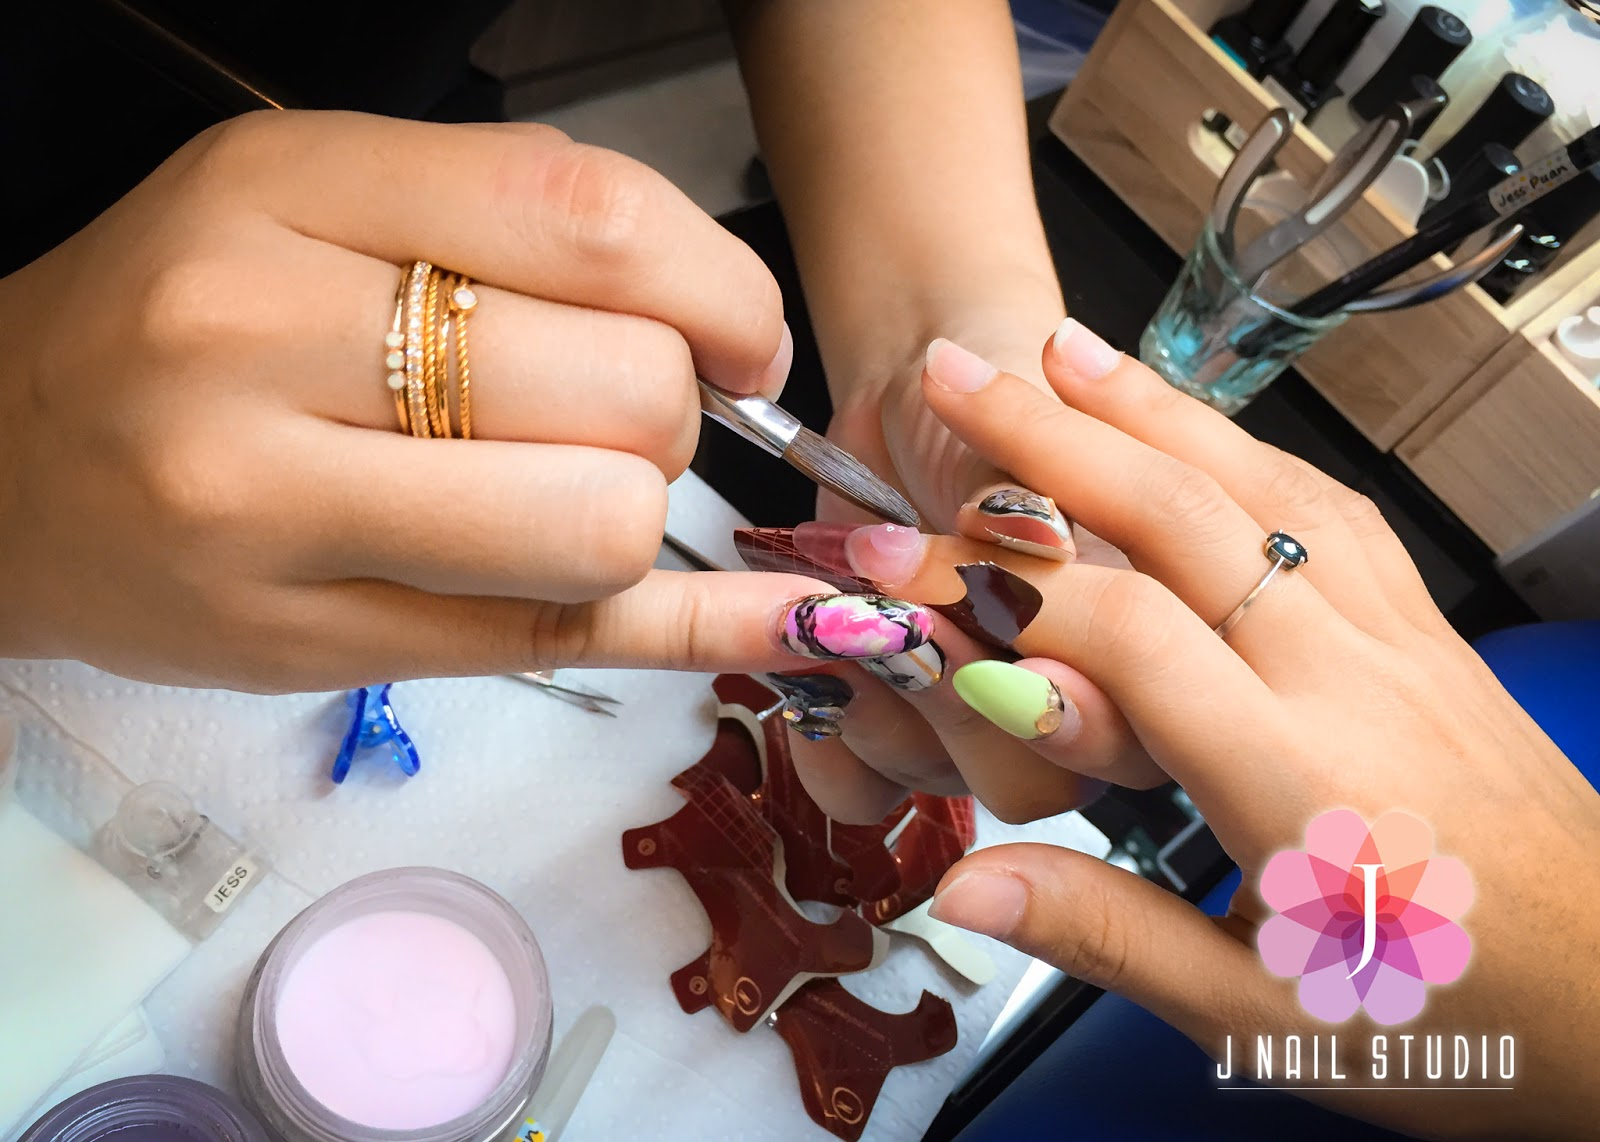 J Nail Studio: Onsite training